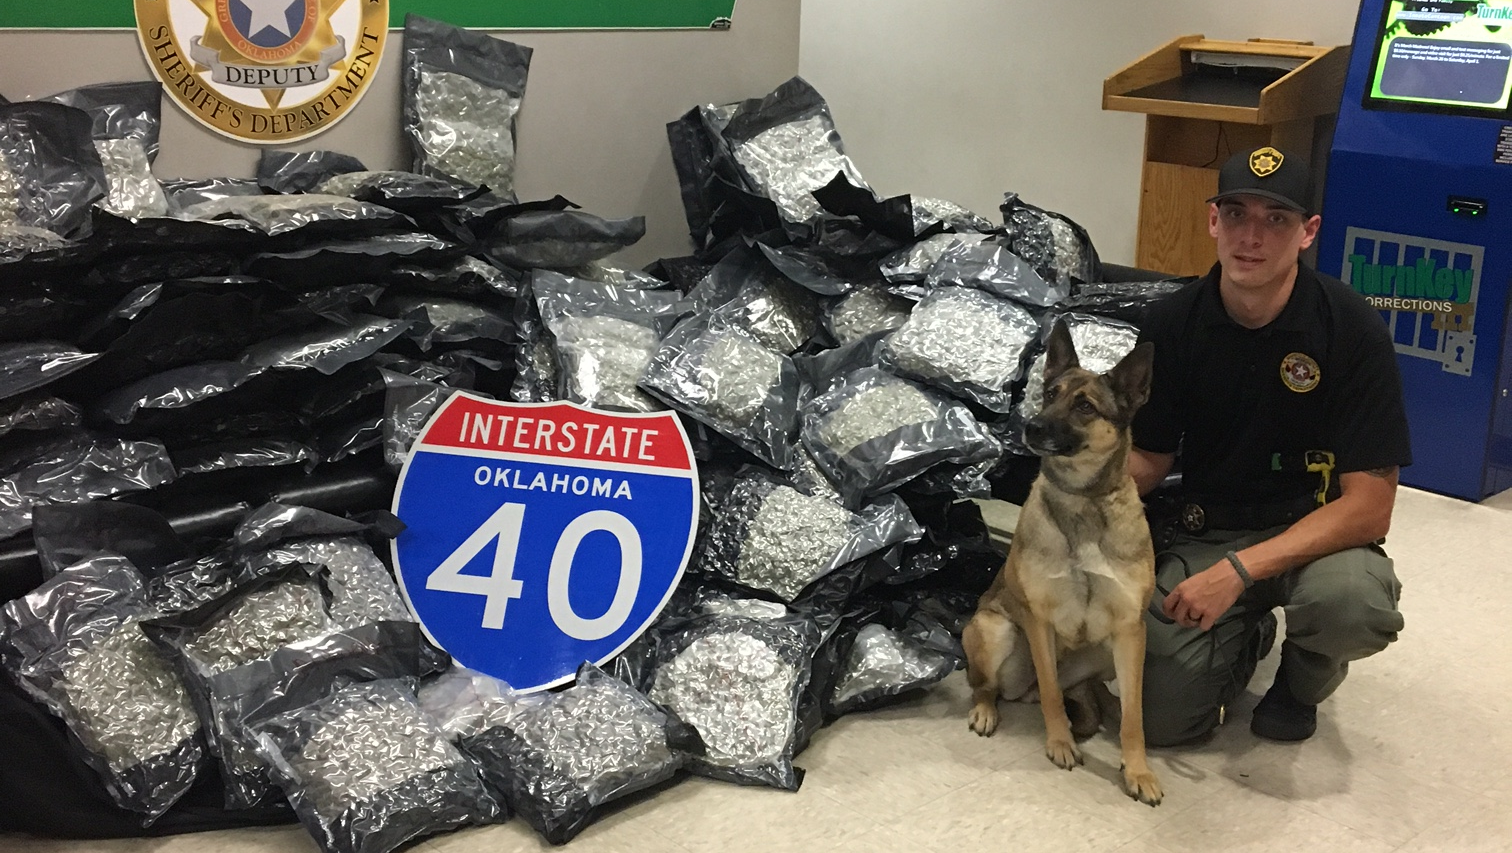 Sequoyah County seized 260 pounds of marijuana inside a vehicle on I-40